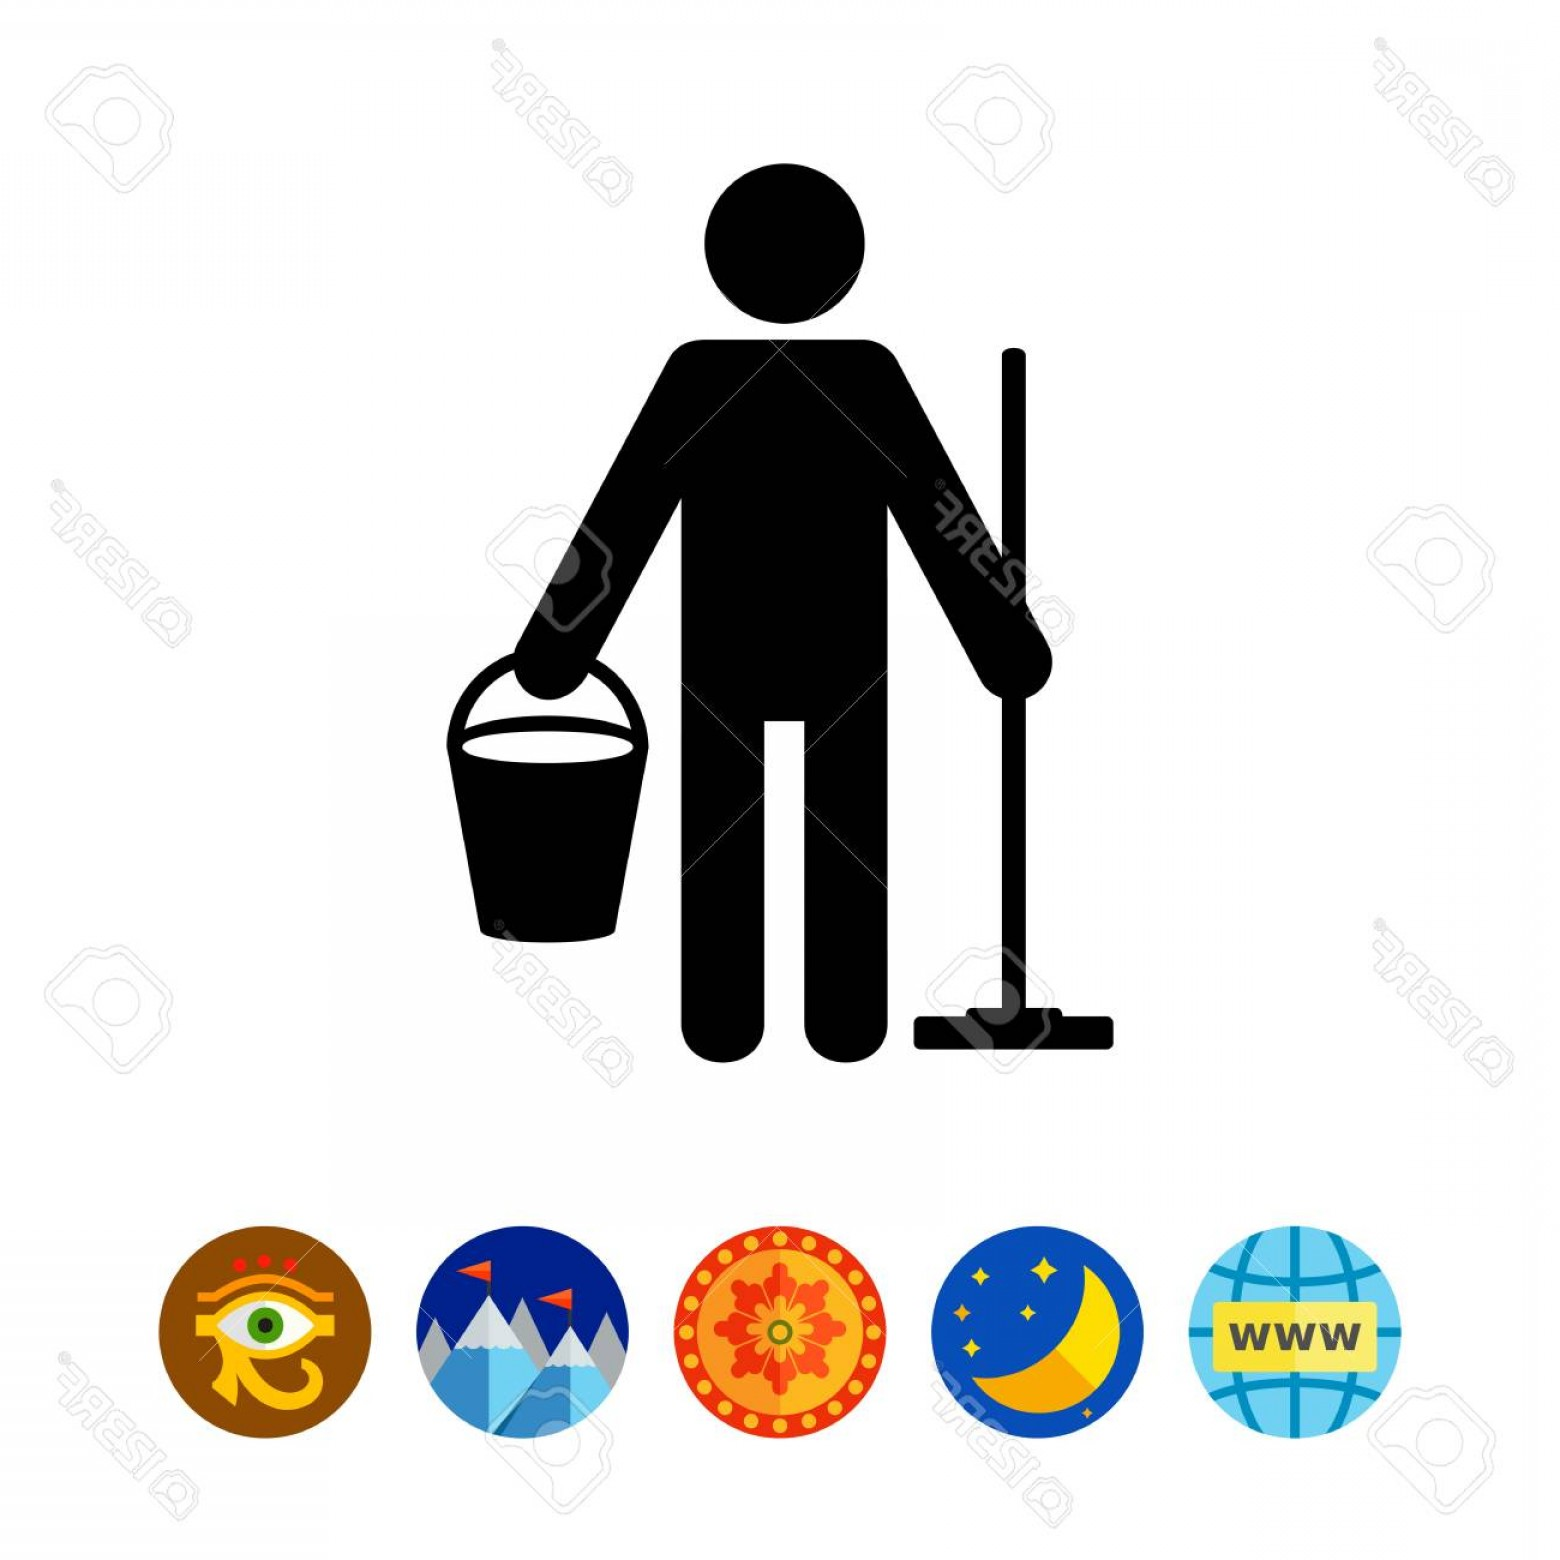 Cleaning Logo Vector Art: Photostock Vector Person With Bucket And Broom Cleaner Staff Washing Cleaning Services Concept Can Be Used For Cleanin